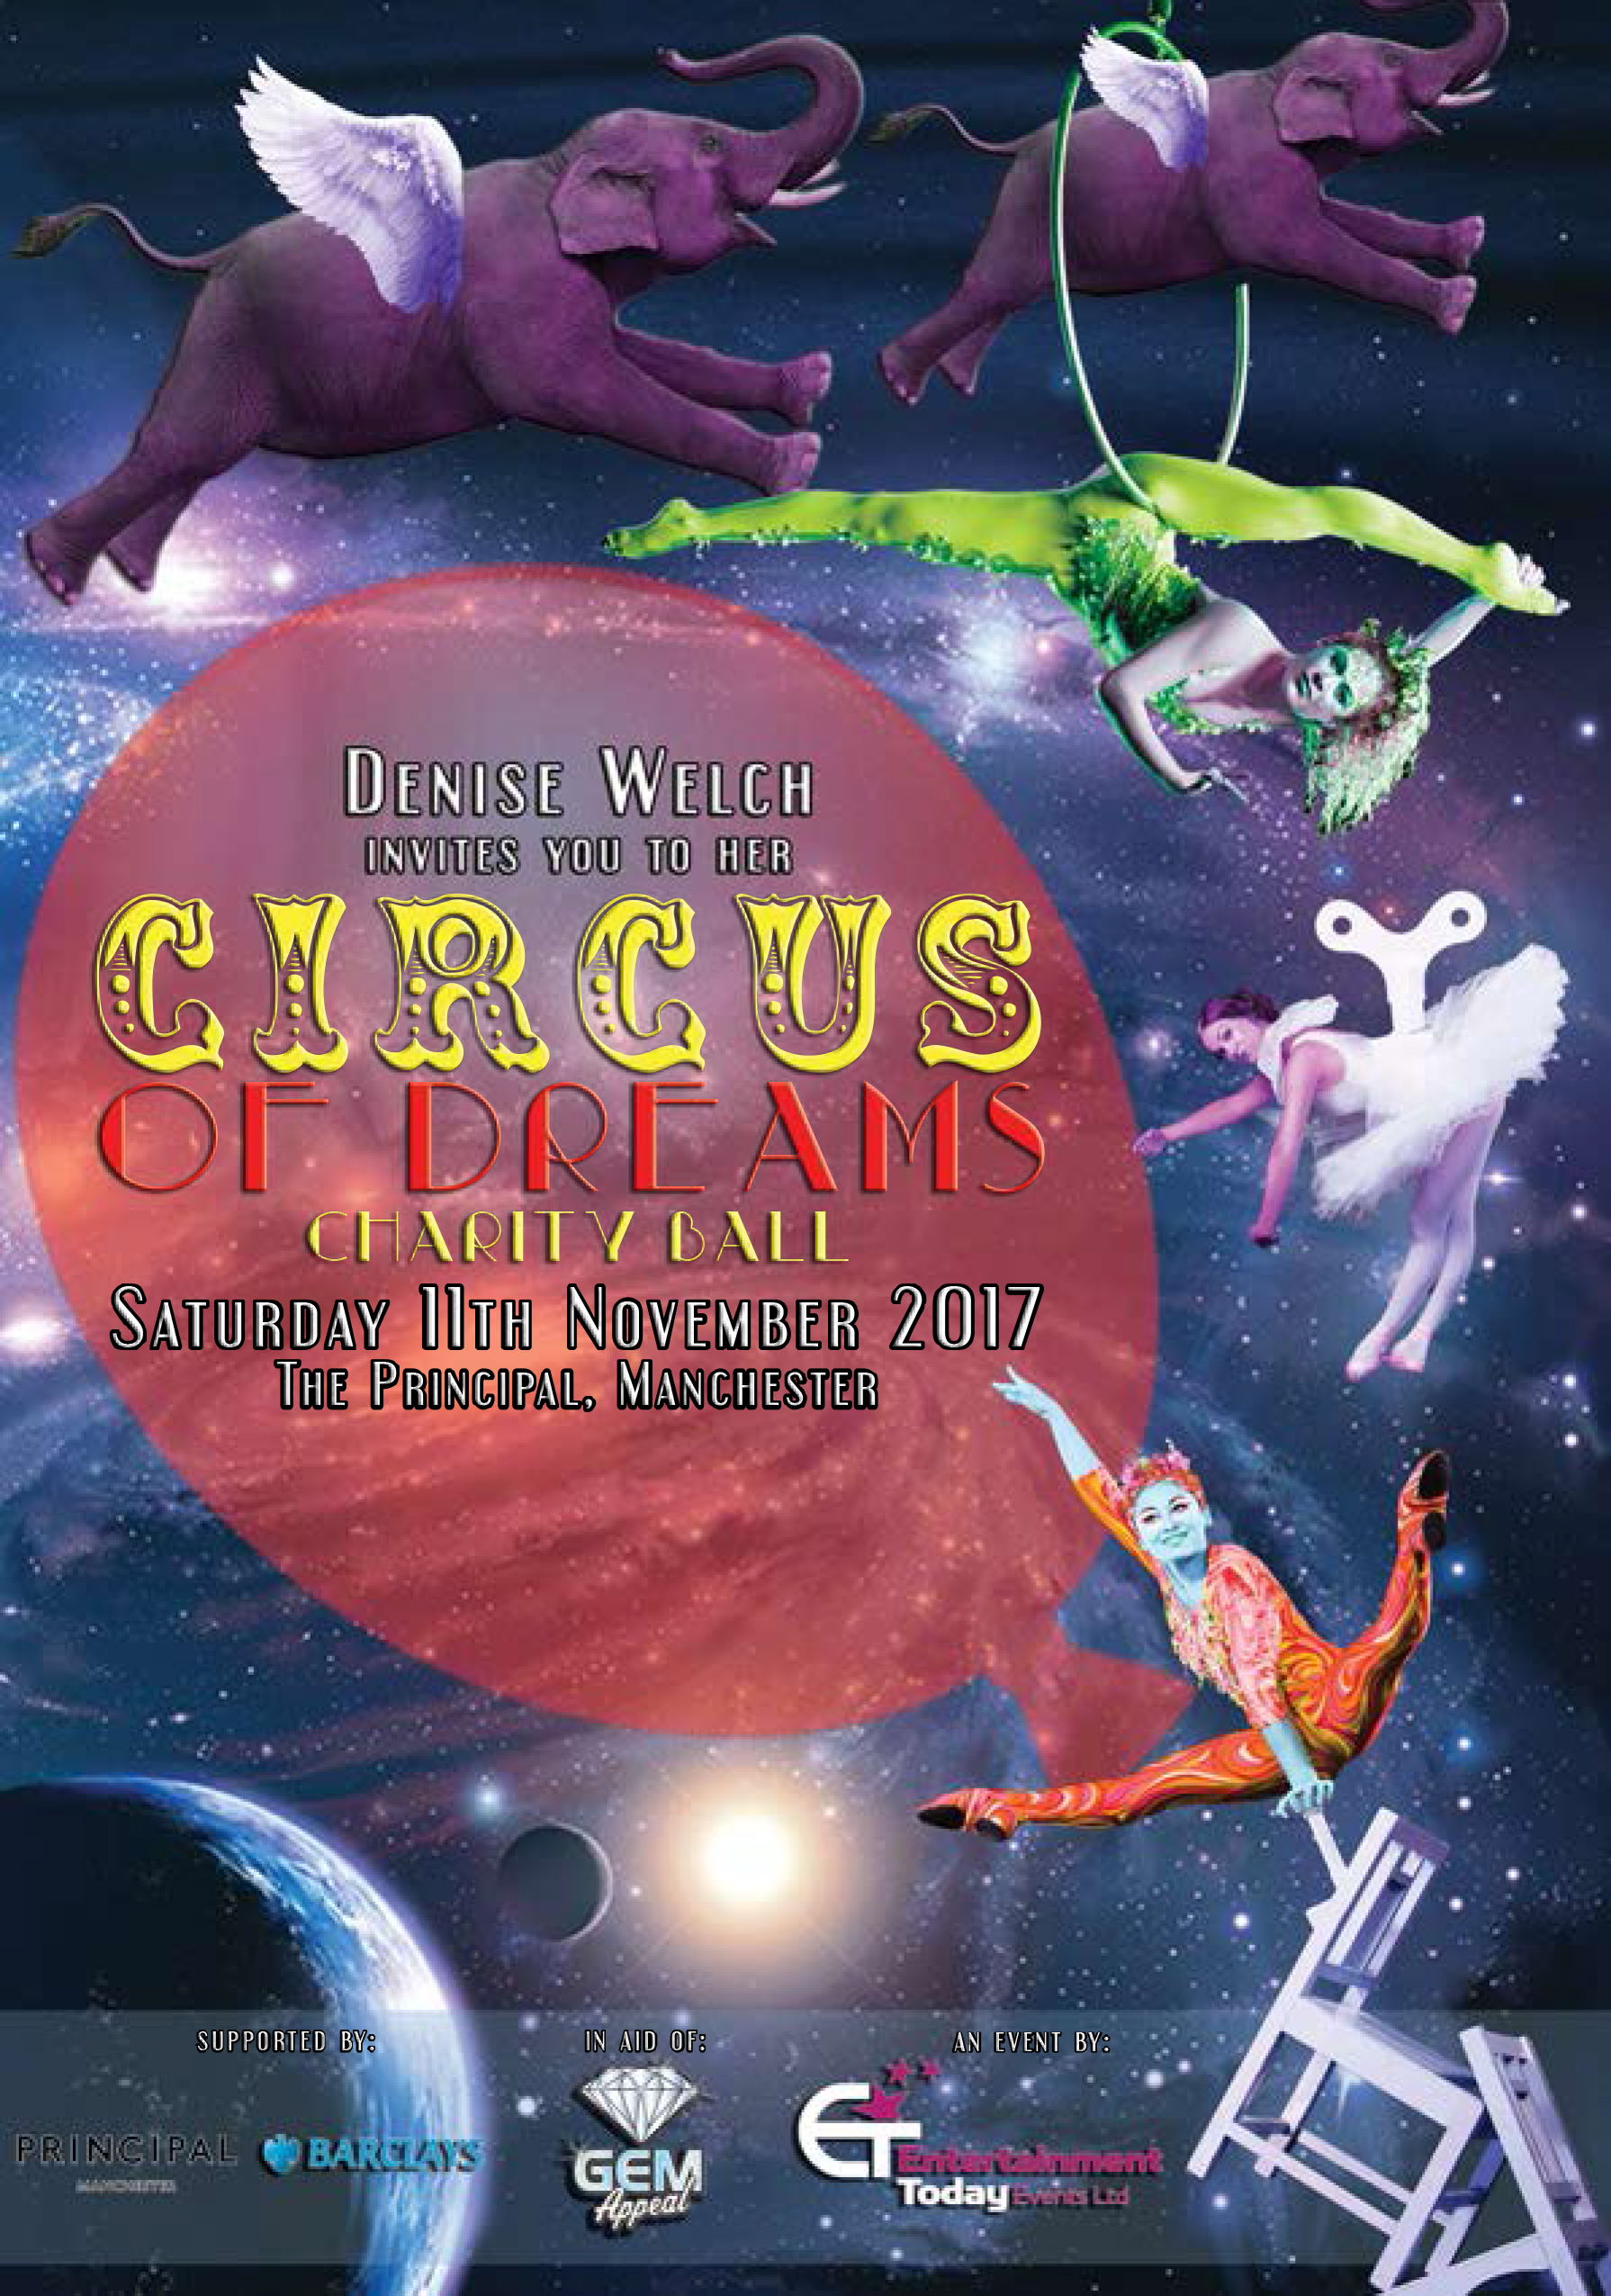 Denise Welch Charity Ball Circus of Dreams Sales Information